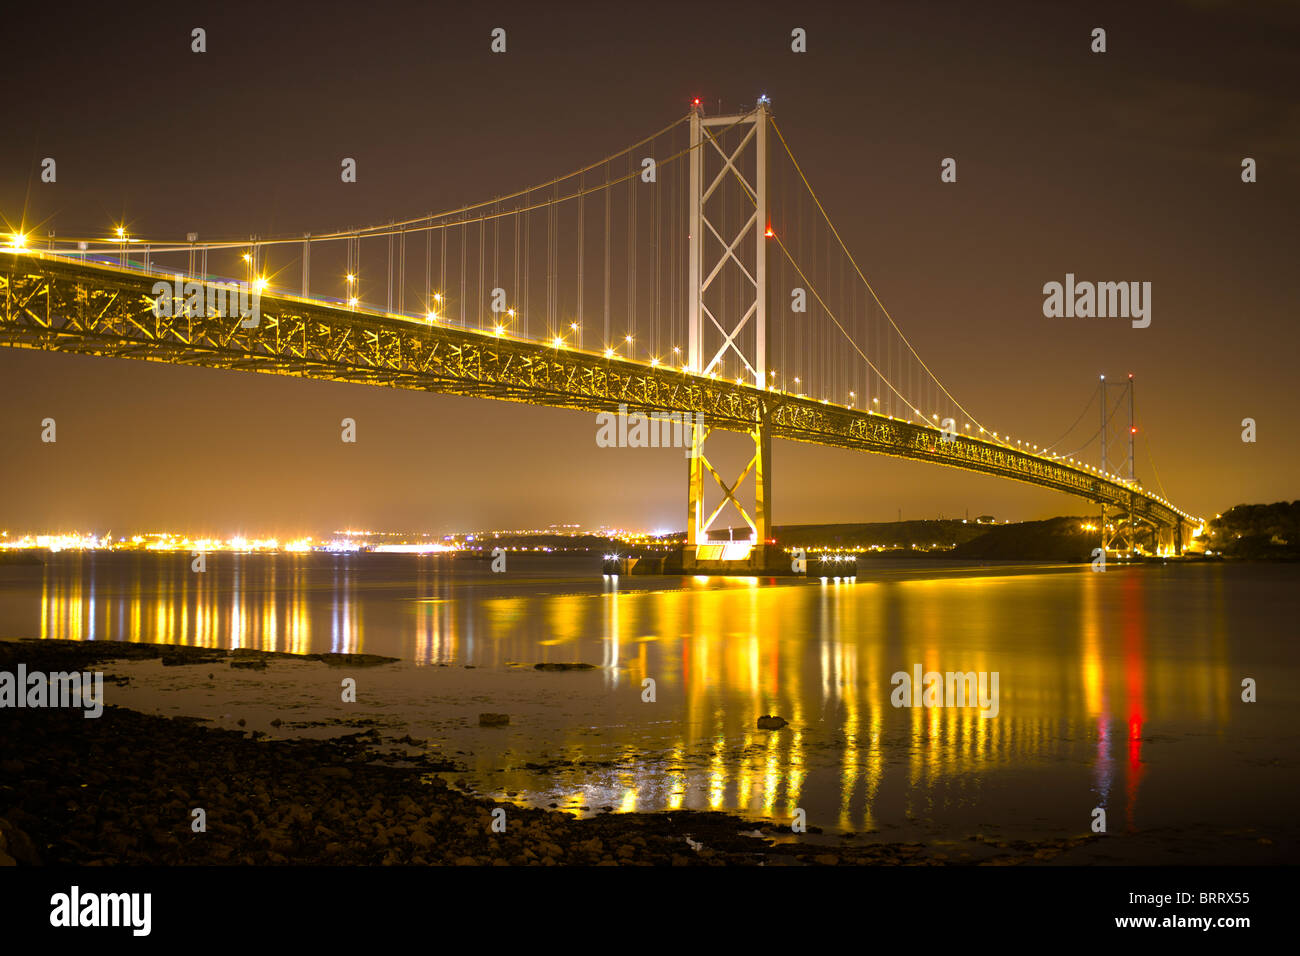 Canon Eos 550d Stock Photos & Canon Eos 550d Stock Images - Alamy